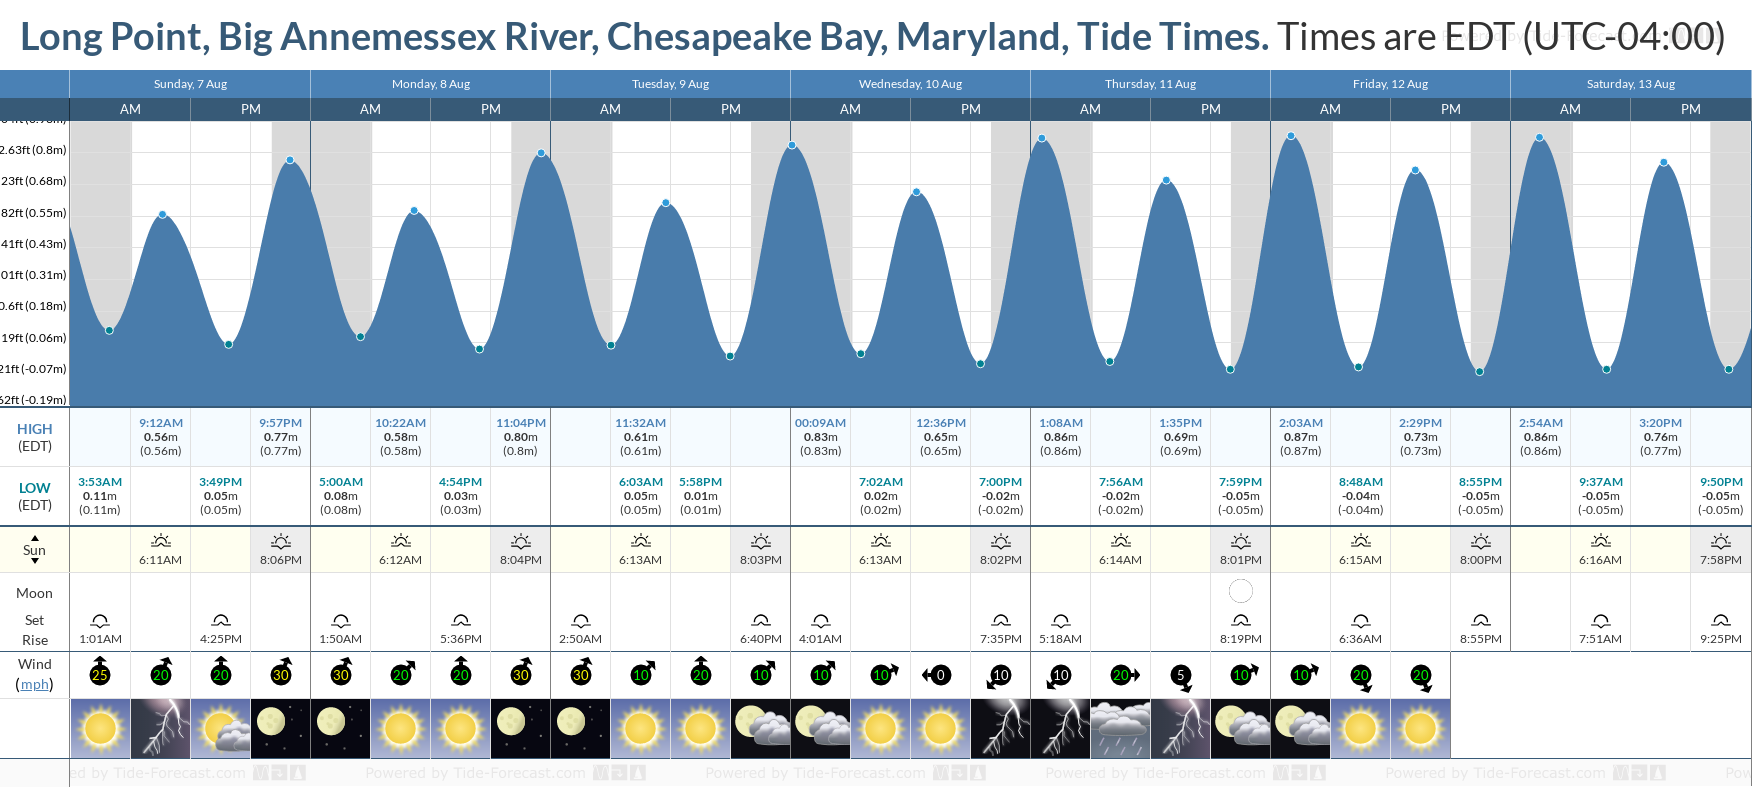 Long Point, Big Annemessex River, Chesapeake Bay, Maryland Tide Chart including high and low tide tide times for the next 7 days